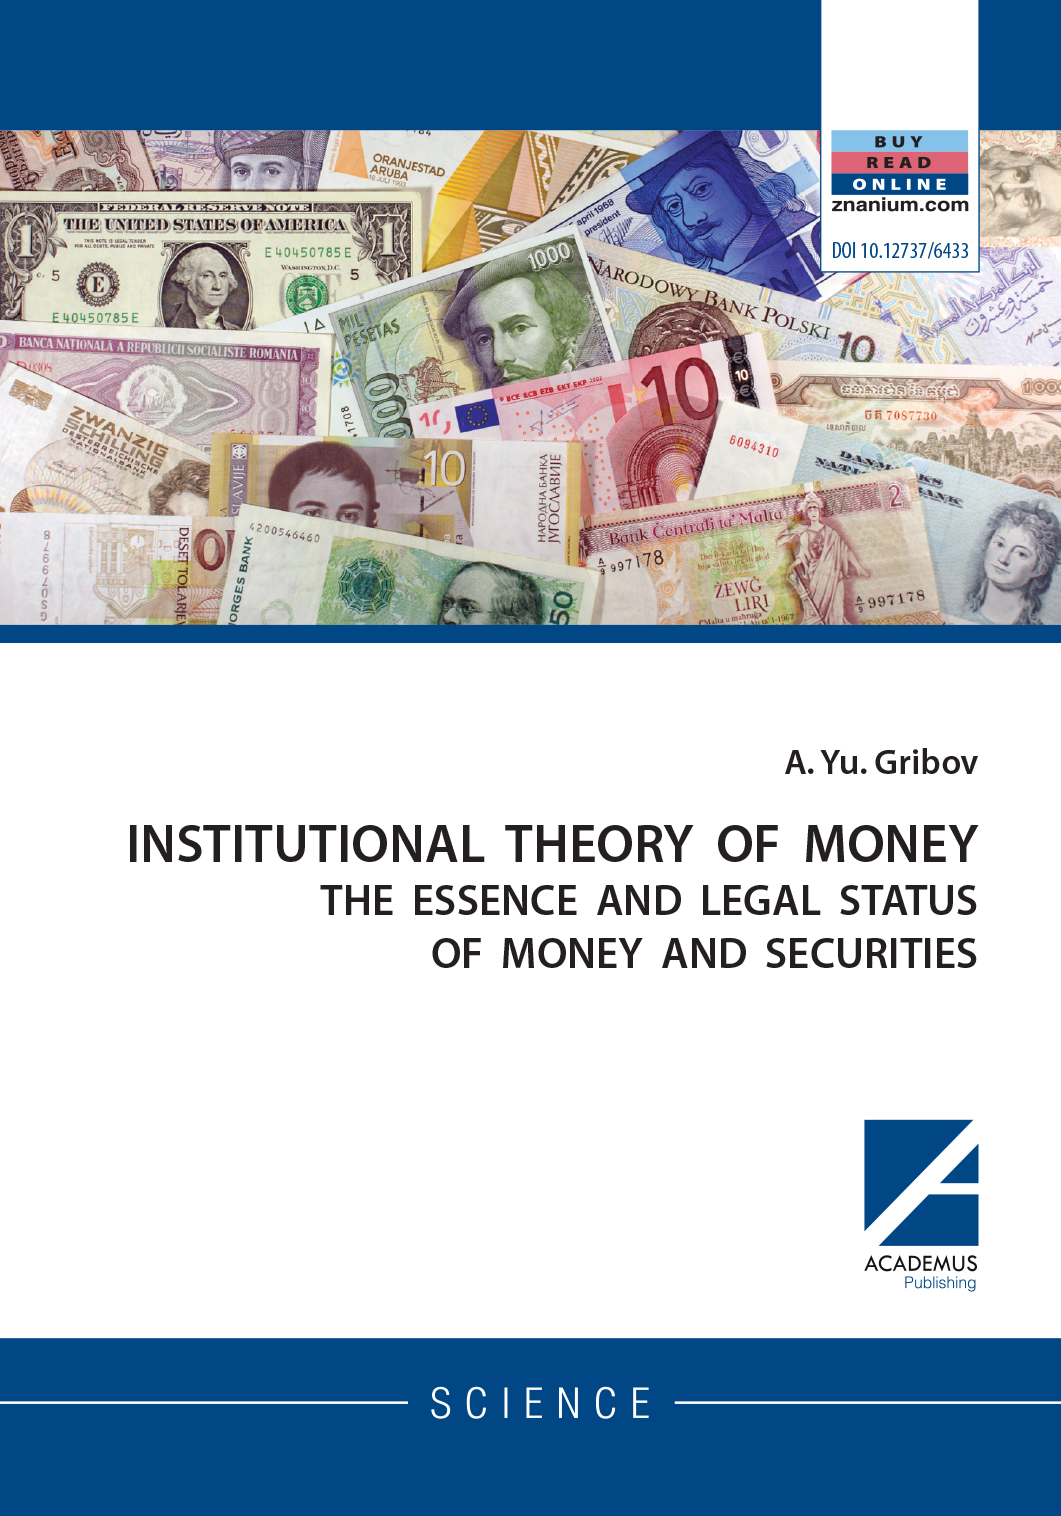 INSTITUTIONAL THEORY OF MONEY: The essence and legal status of money and securities